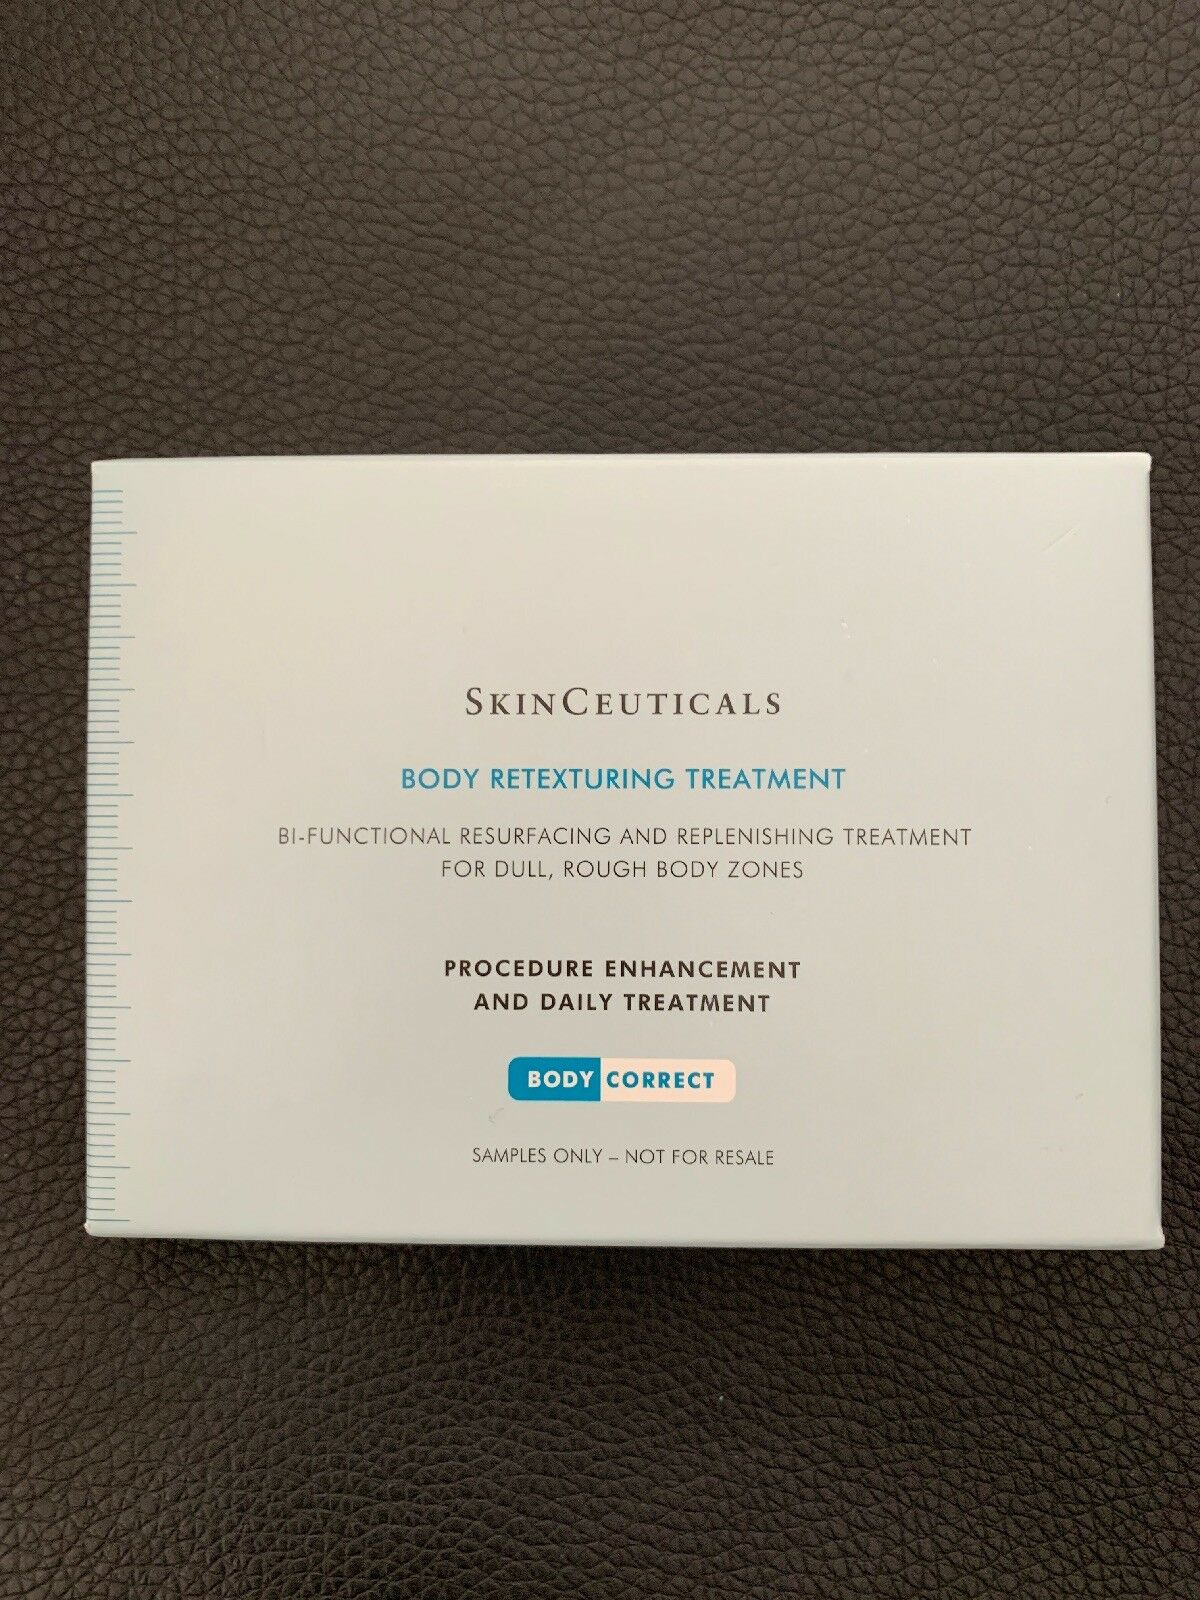 6 Samples Skinceuticals Body Retexturing Treatment Exp 12/20 Free Shipping